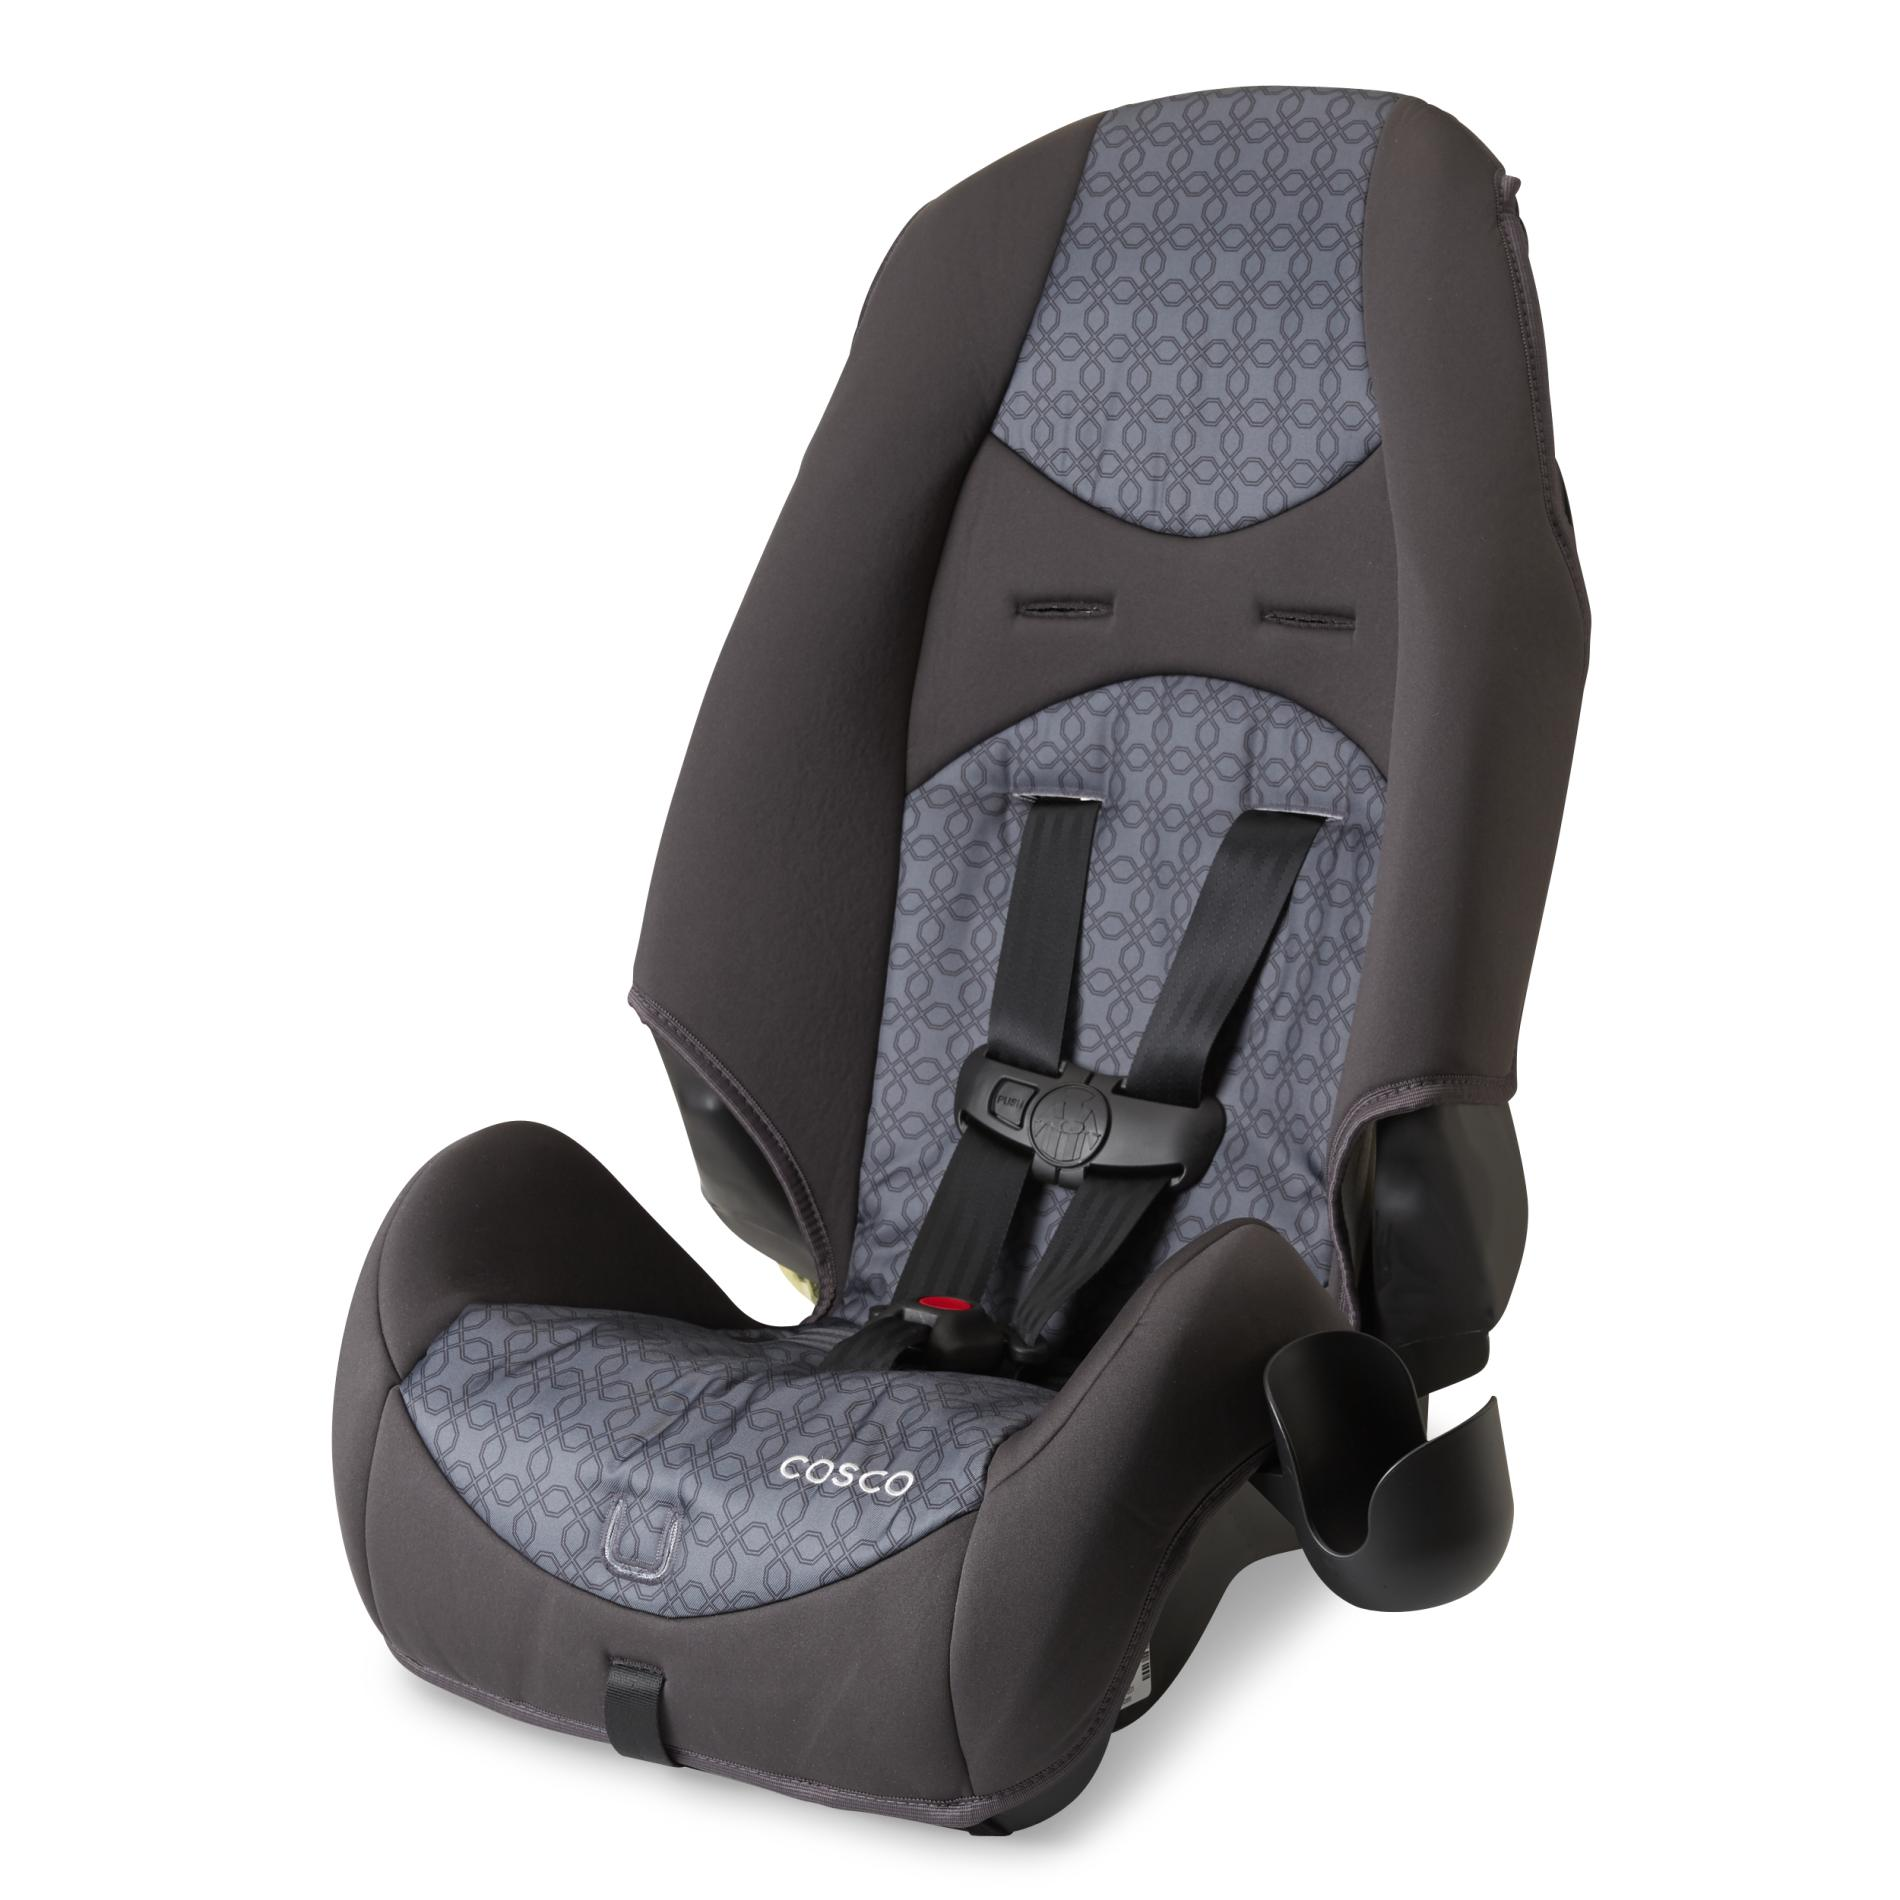 Cosco Highback 2 In 1 Booster Car Seat